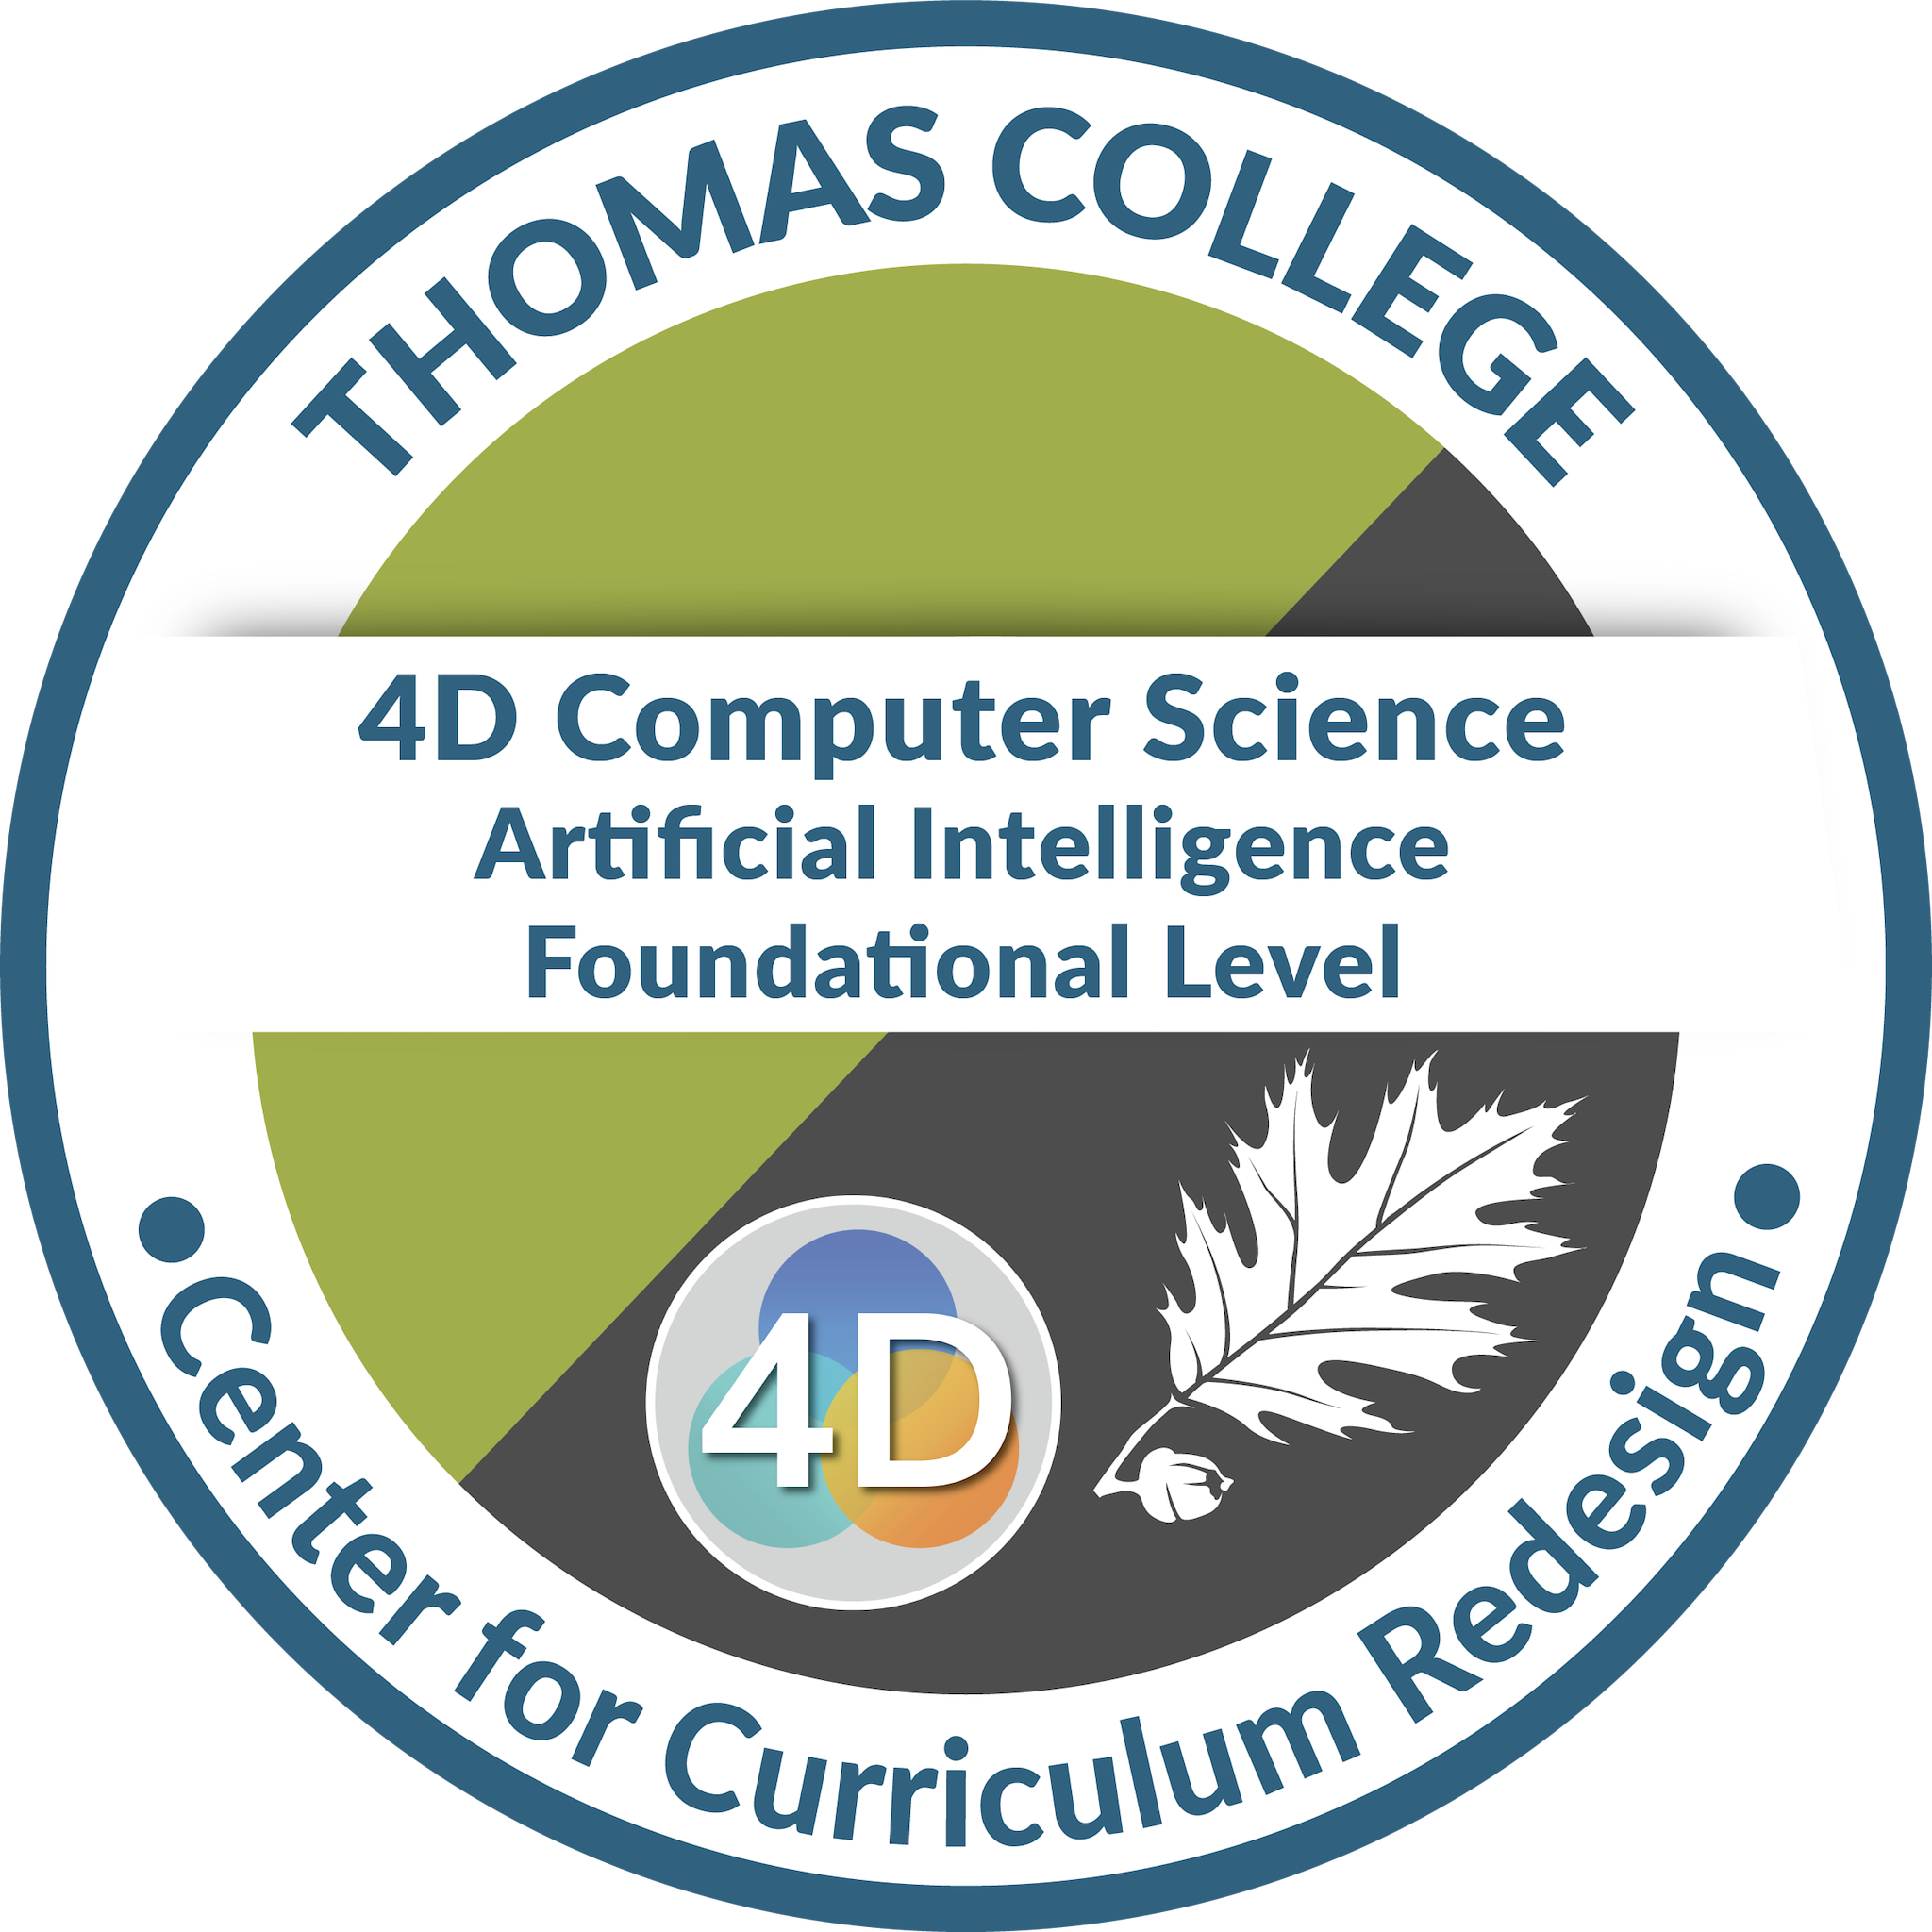 4D Computer Science: Artificial Intelligence